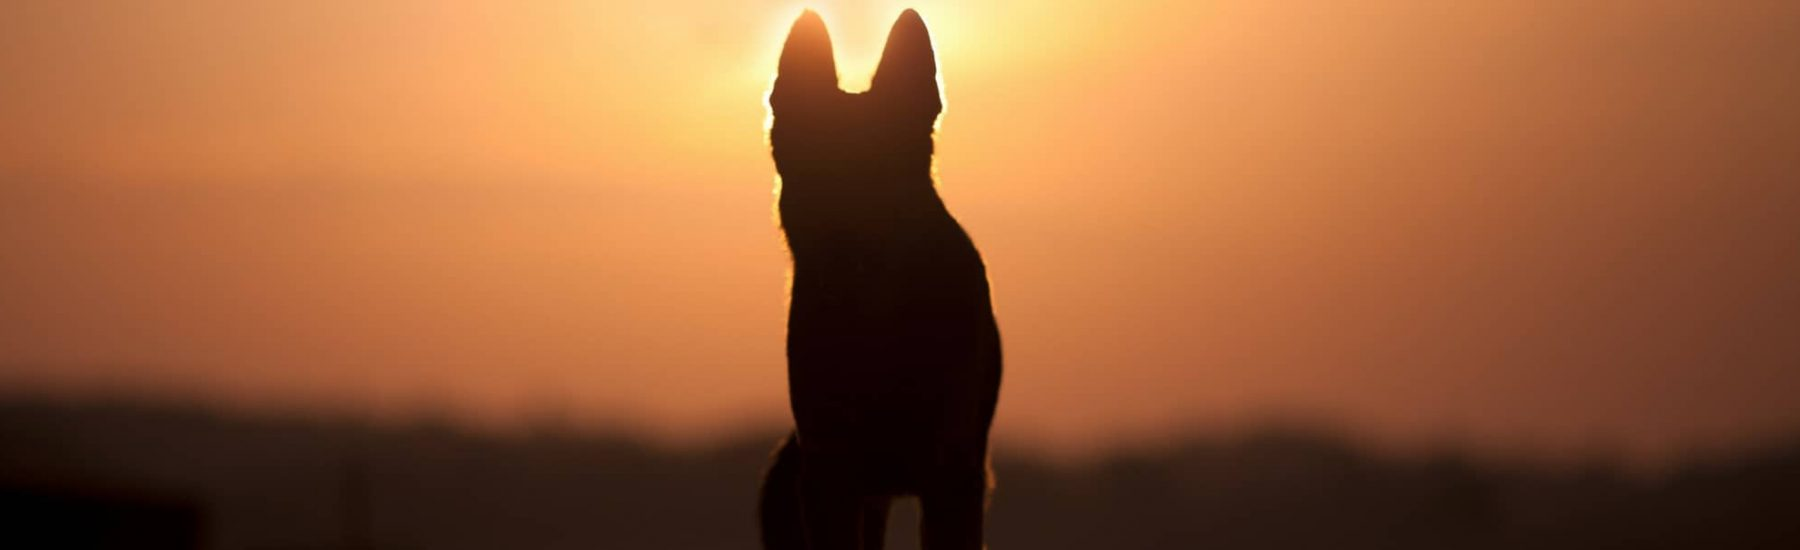 Dog at Sunset